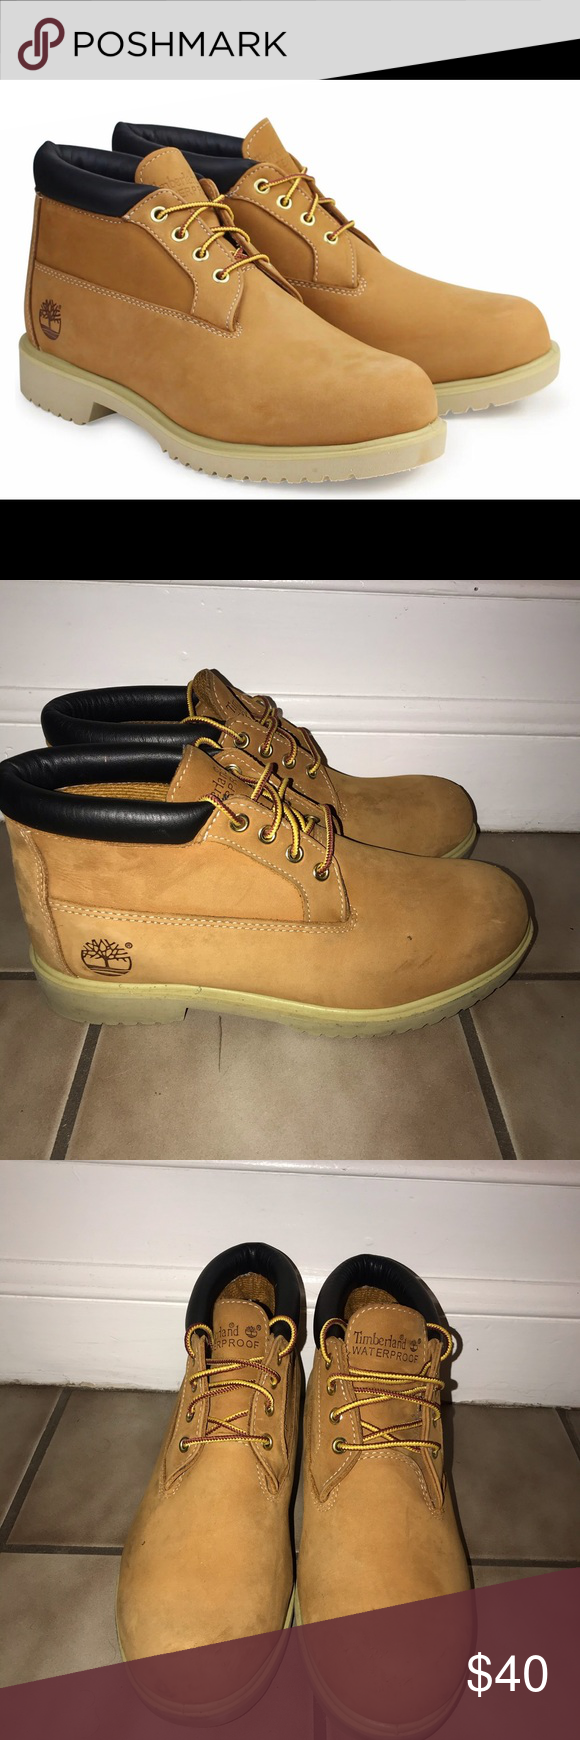 Perla muerto Obsesión  Timberland Classic Waterproof Chukka Boots 50061 in 2020 | Chukka boots,  Timberland classic, Timberlands shoes